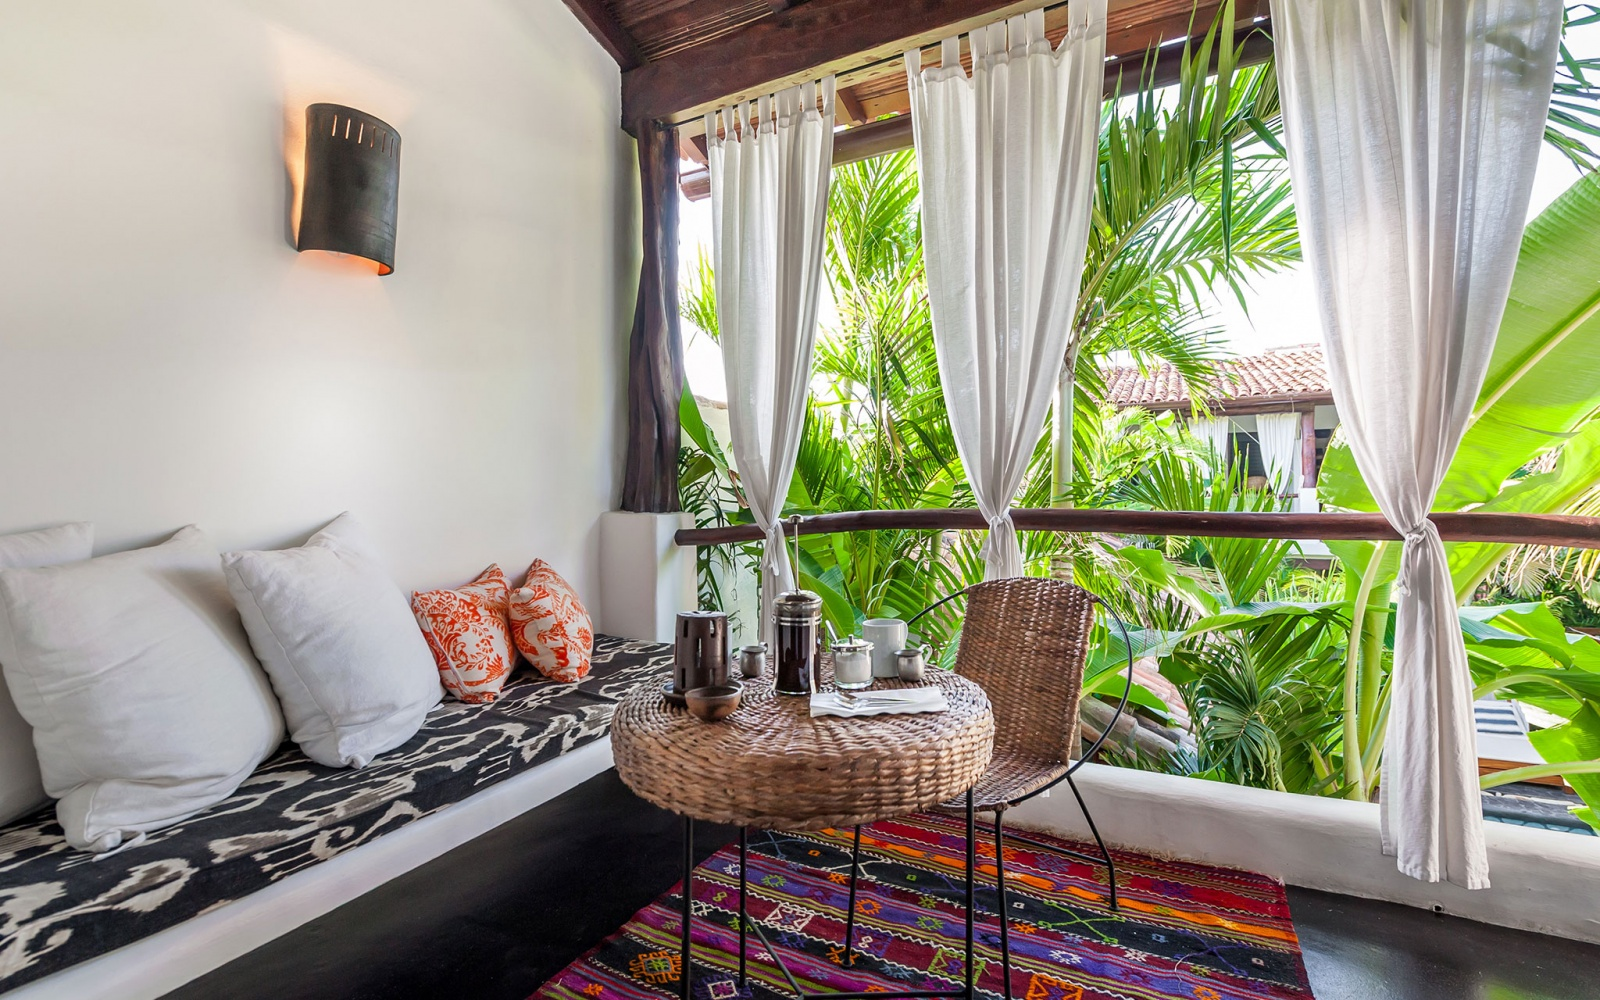 The Tribal Hotel in Nicaragua